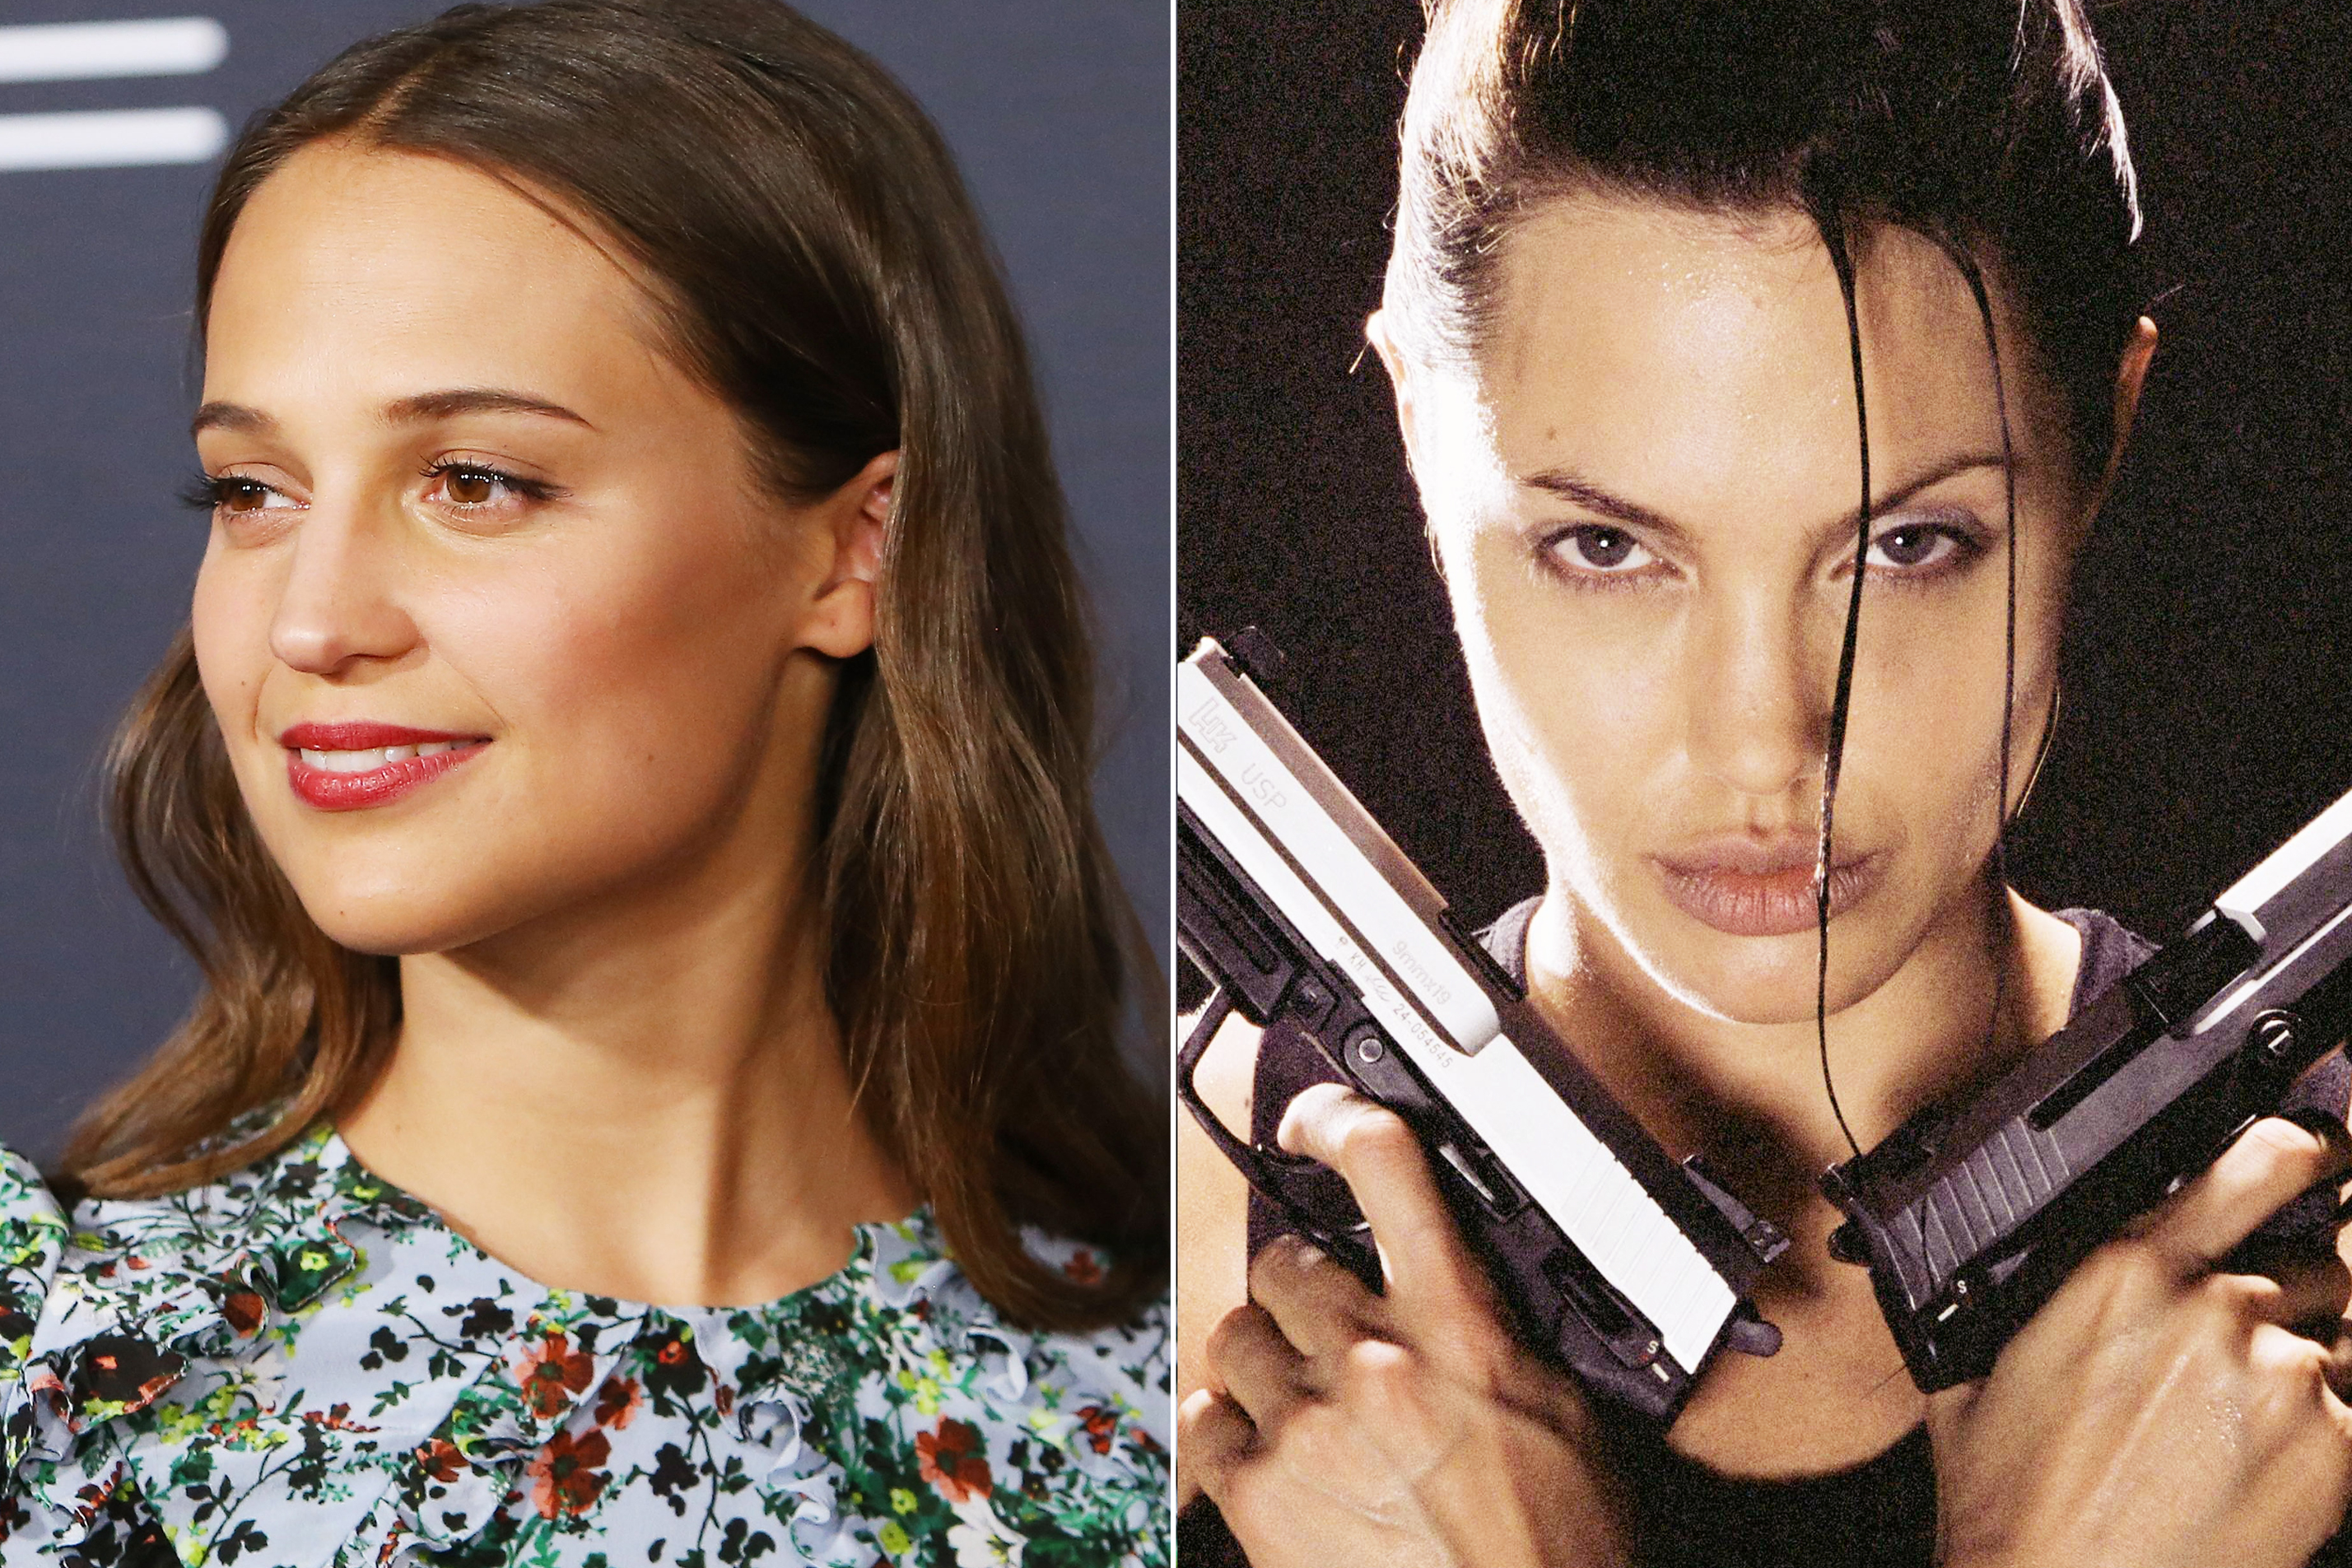 Alicia Vikander in Hollywood on Feb. 26, 2016 (R); Angelina Jolie in Tomb raider